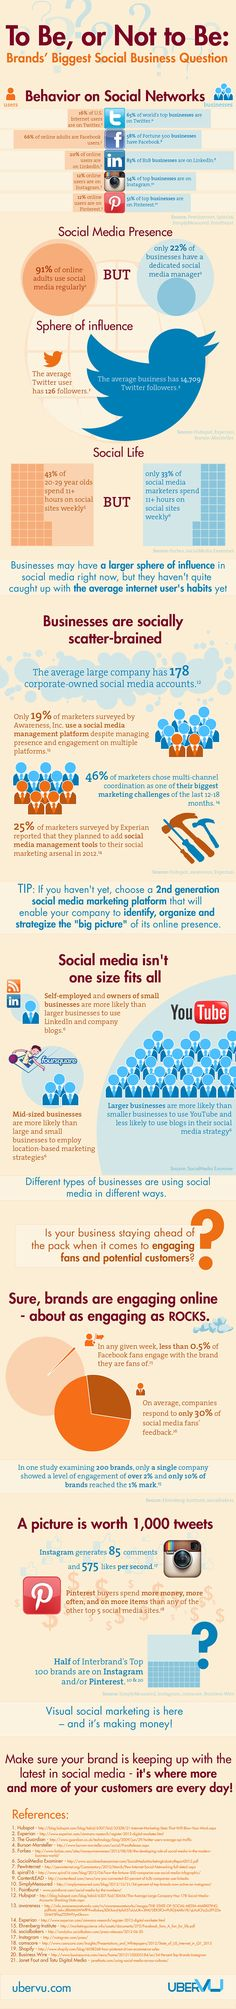 To Be, or Not to Be: Brands' Biggest #Social #Business Question - #SMM - #Infografia